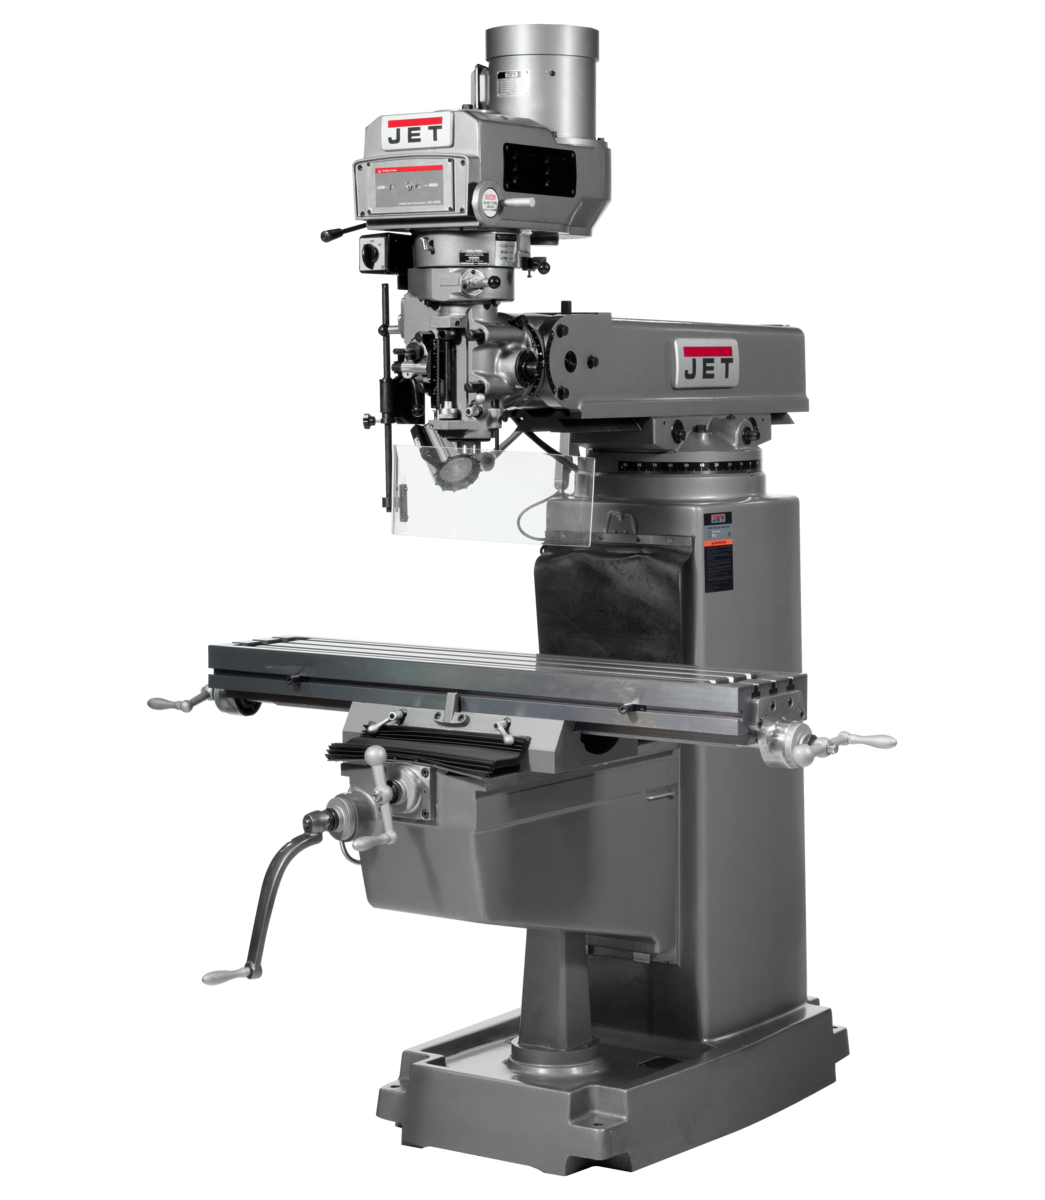 """JTM-1050VS2 Mill With ACU-RITE 203 DRO With X-Axis Powerfeed and 8"""" Riser Block"""